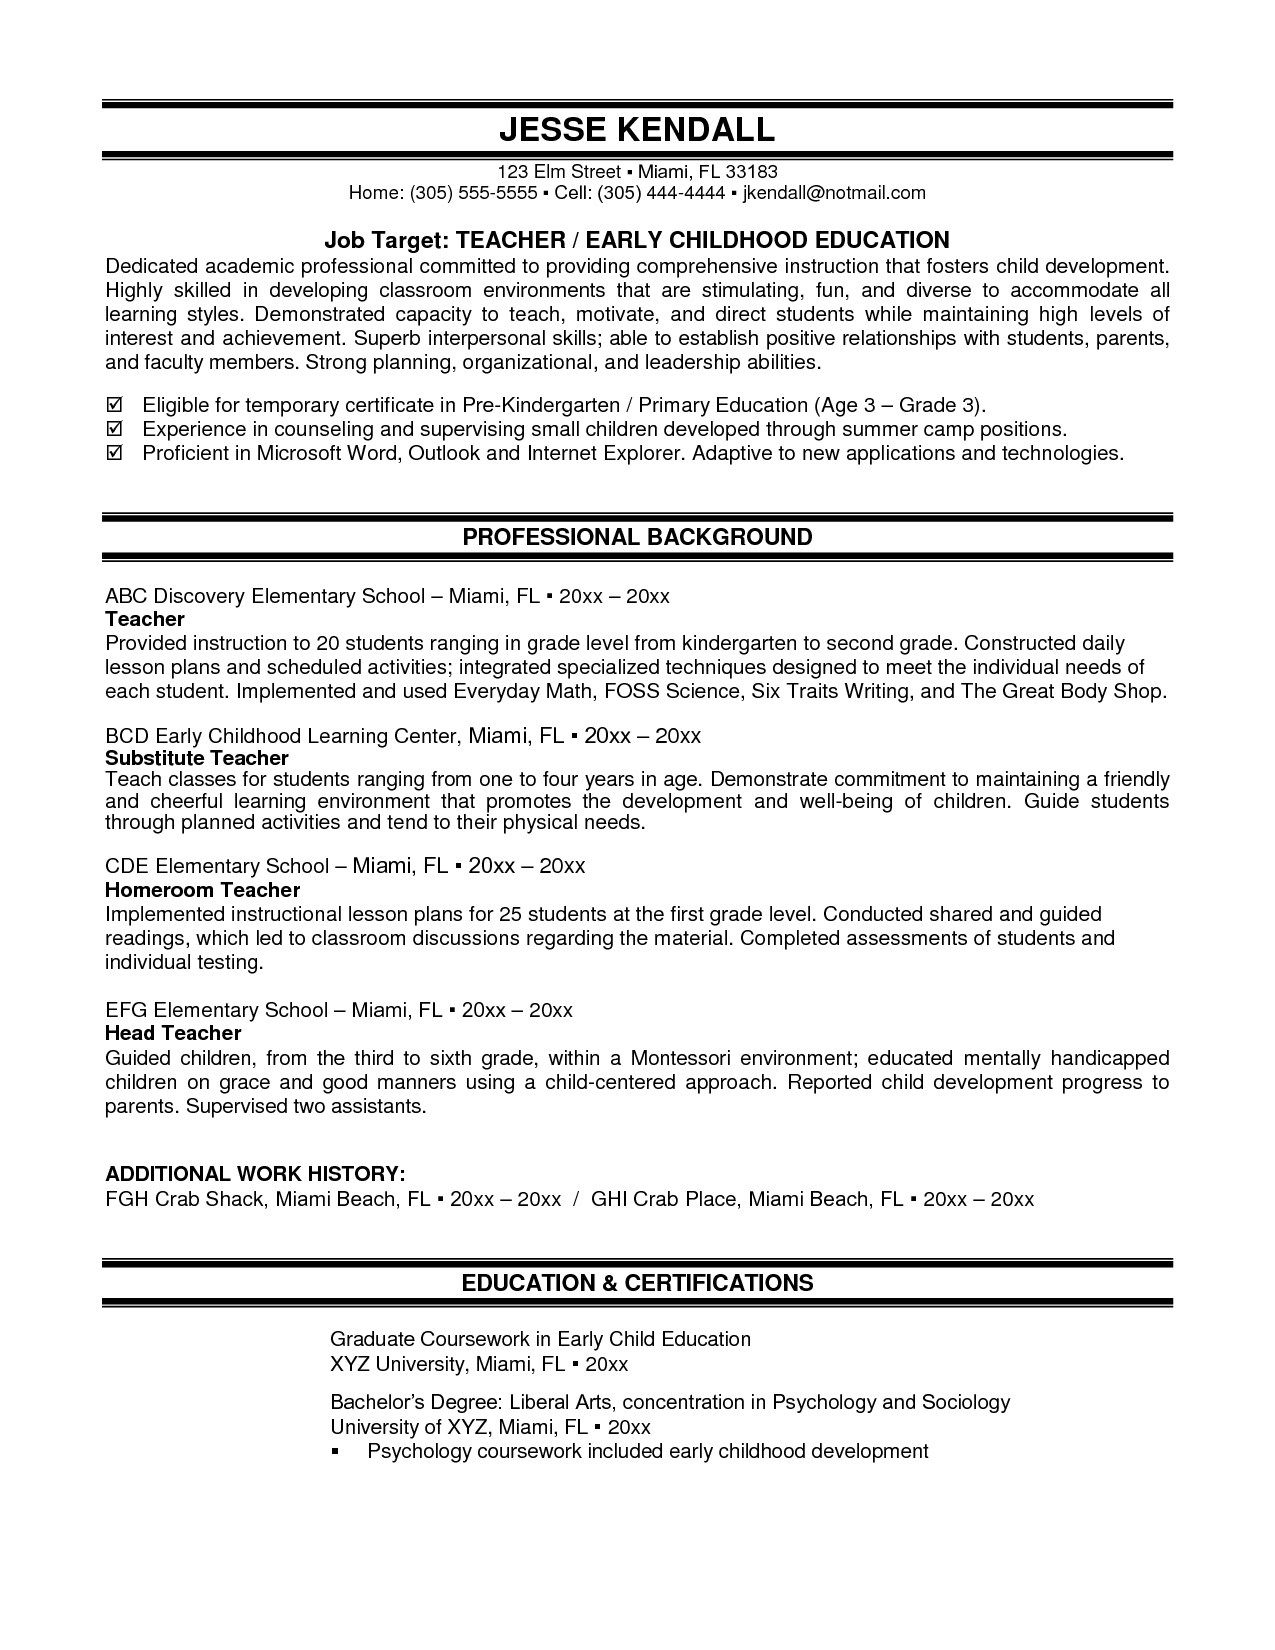 Best Place To Post Resume Glamorous Private Music Teacher Resume Sample  Httpersumeprivate